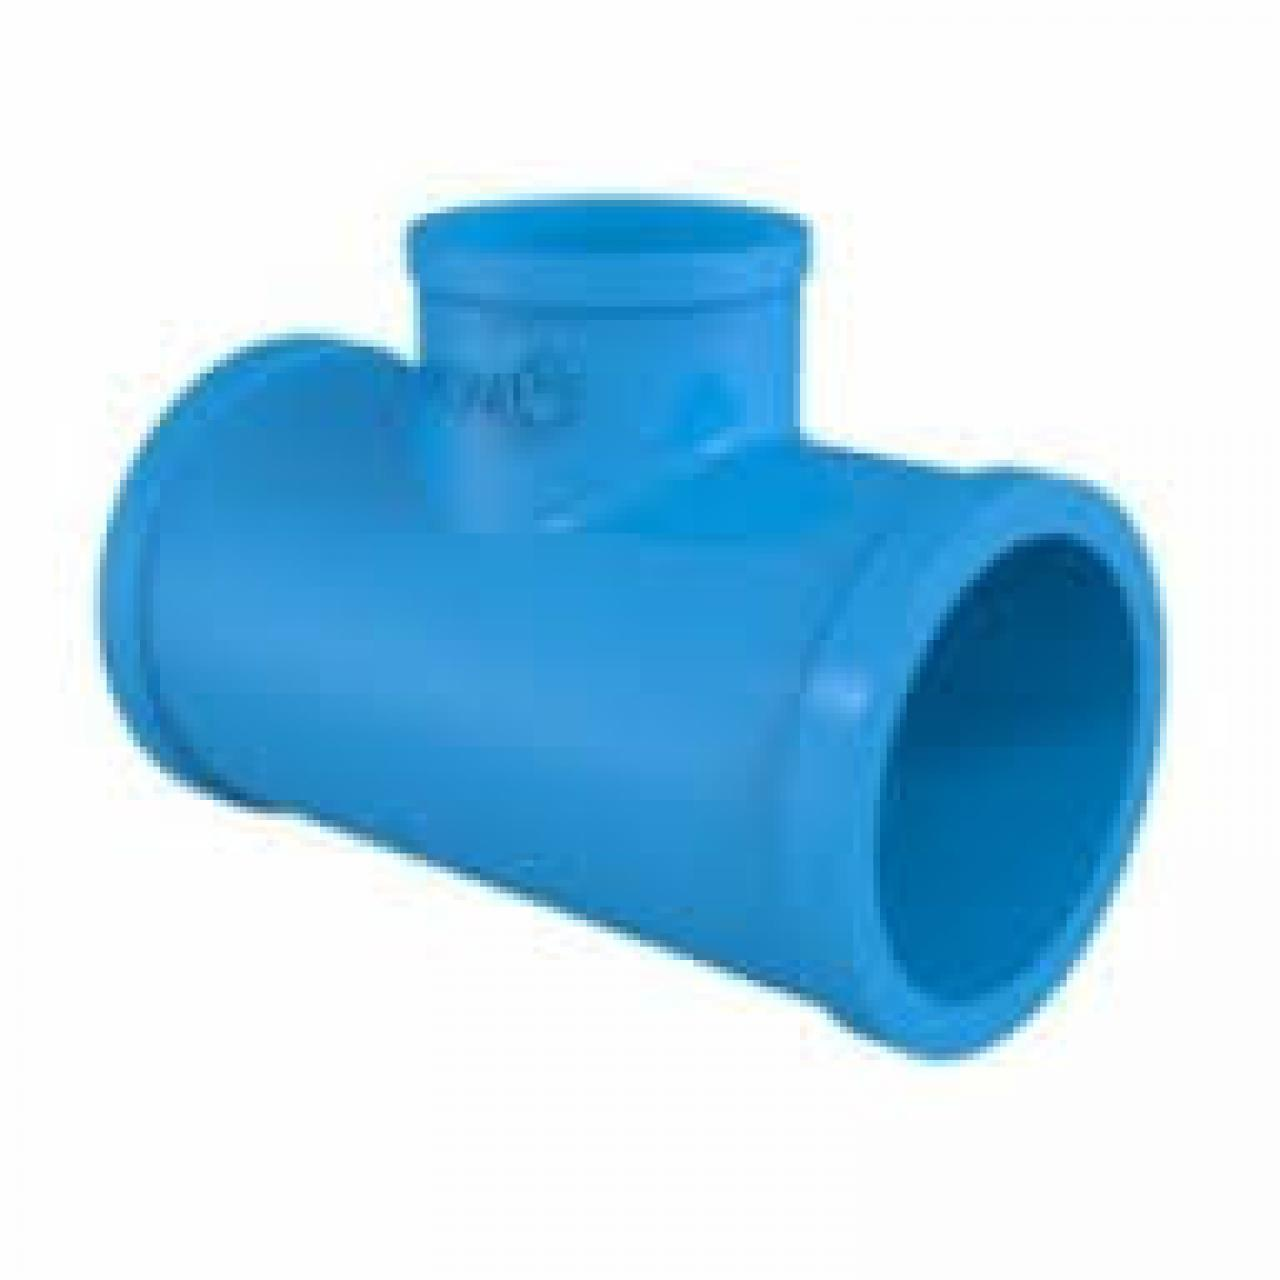 TEE PVC 50MM SOLDAVEL